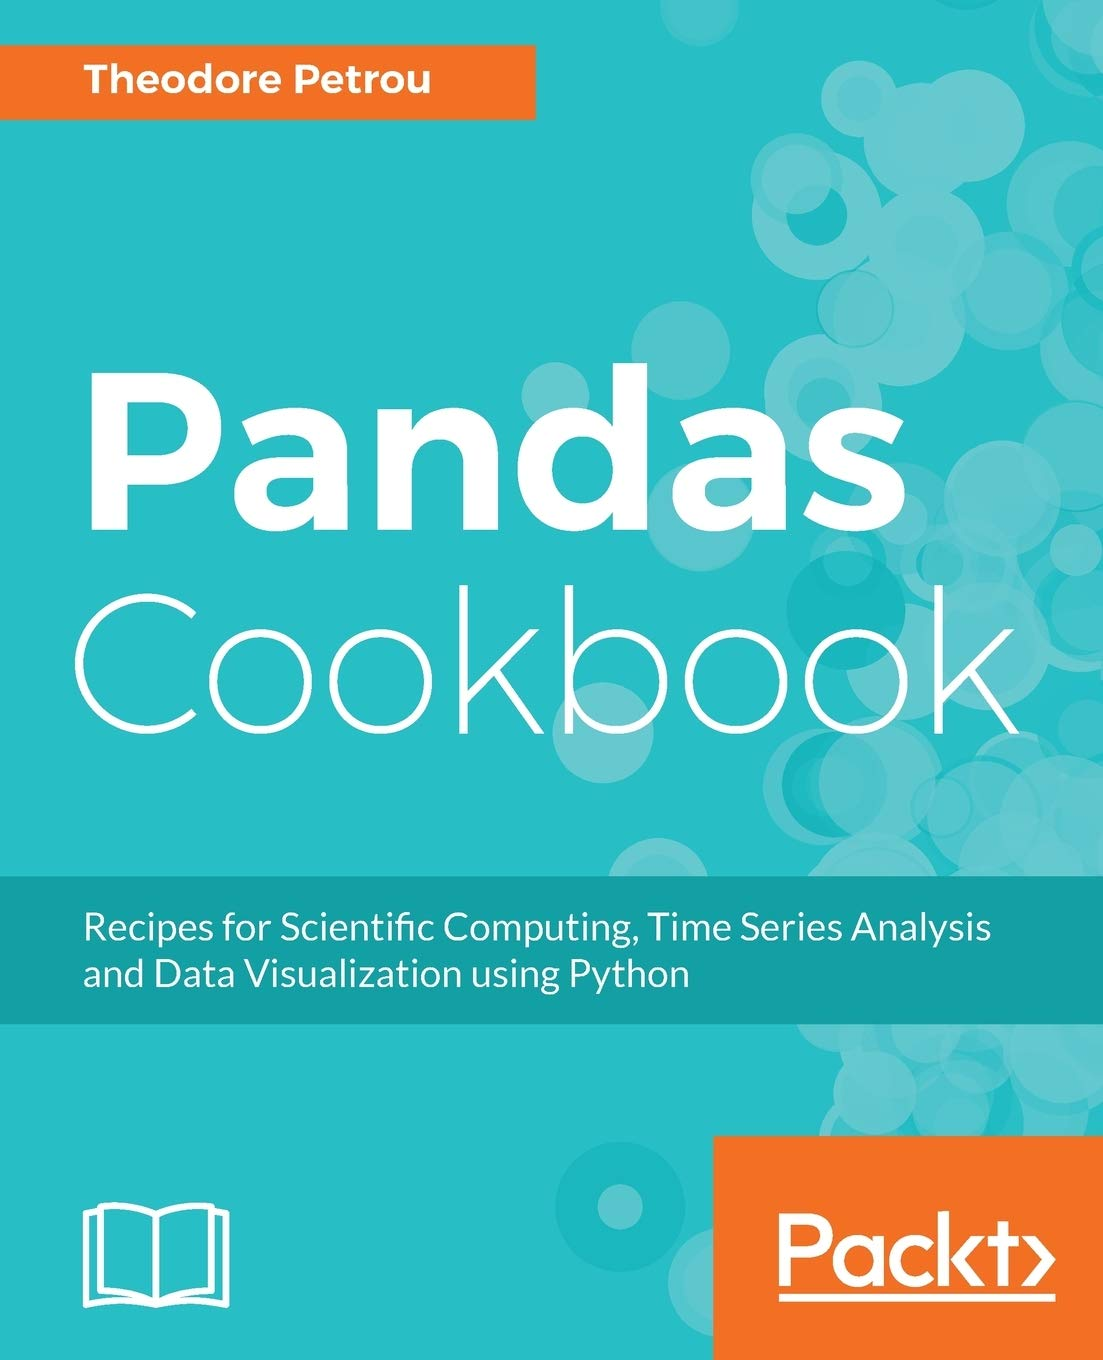 Pandas Cookbook: Recipes for Scientific Computing, Time Series Analysis and Data Visualization using Python